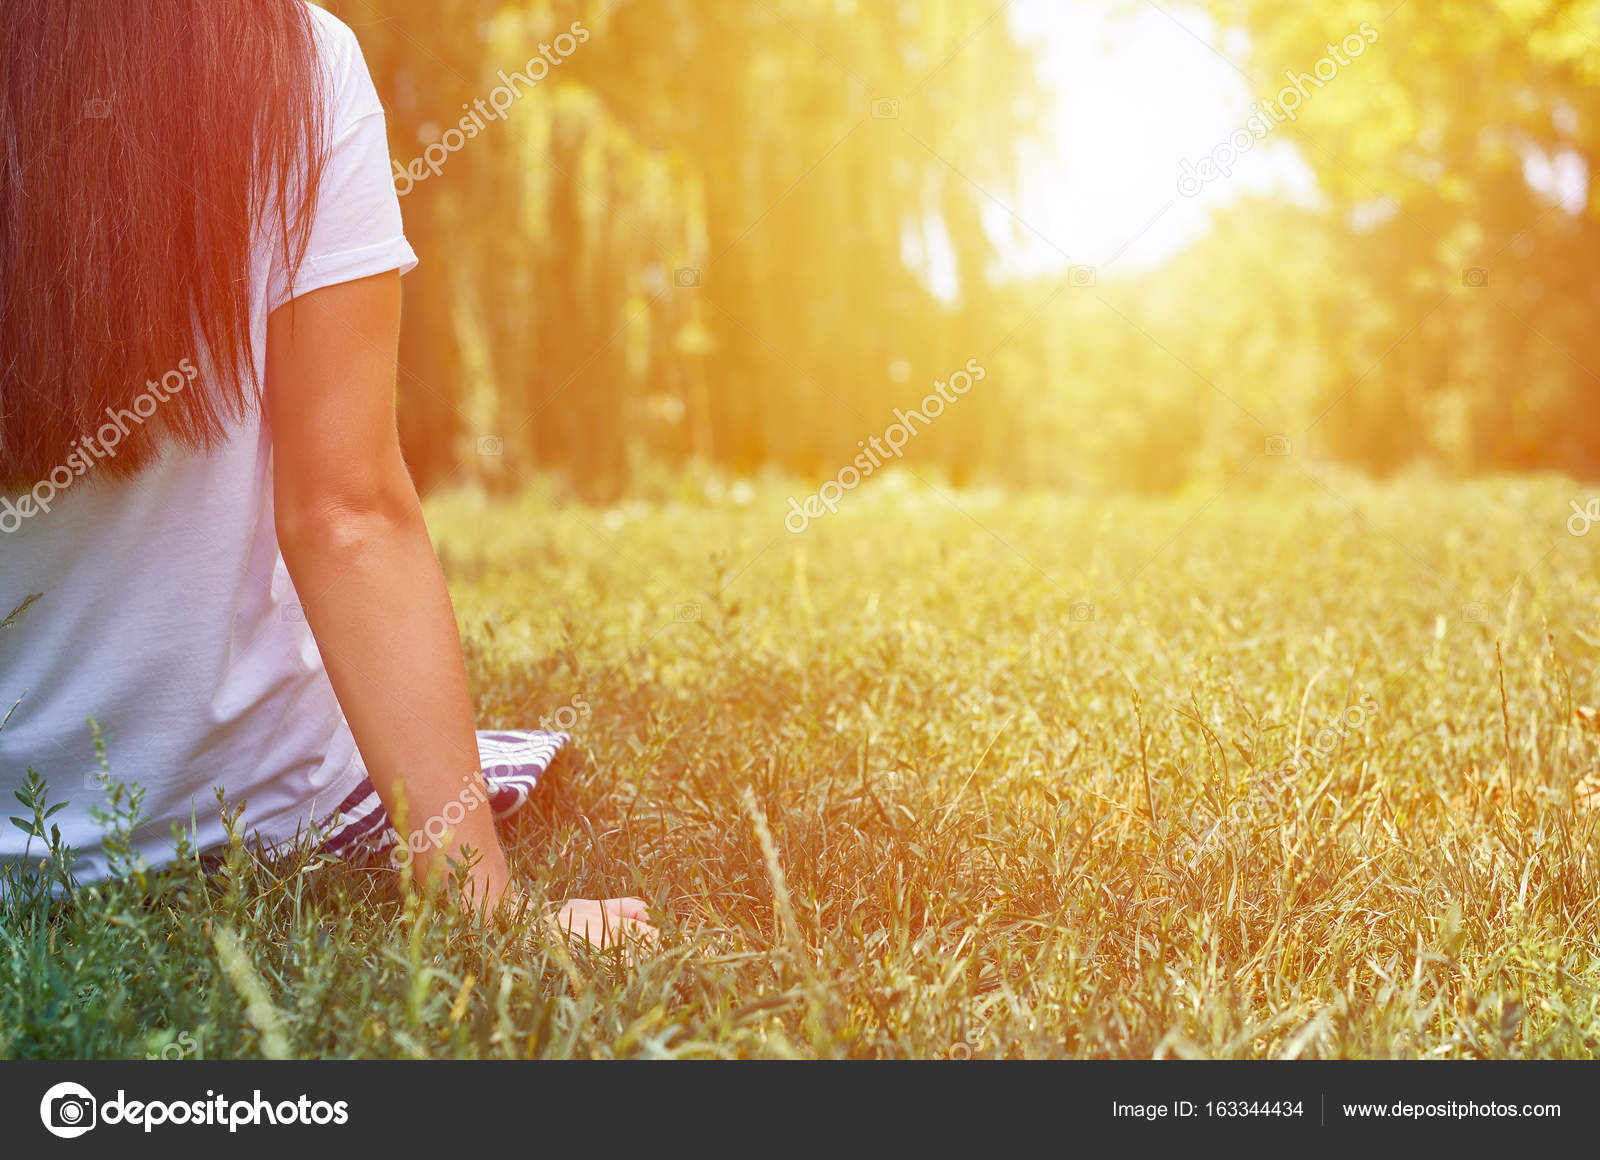 Girl sitting on grass and dreaming looking into the distance